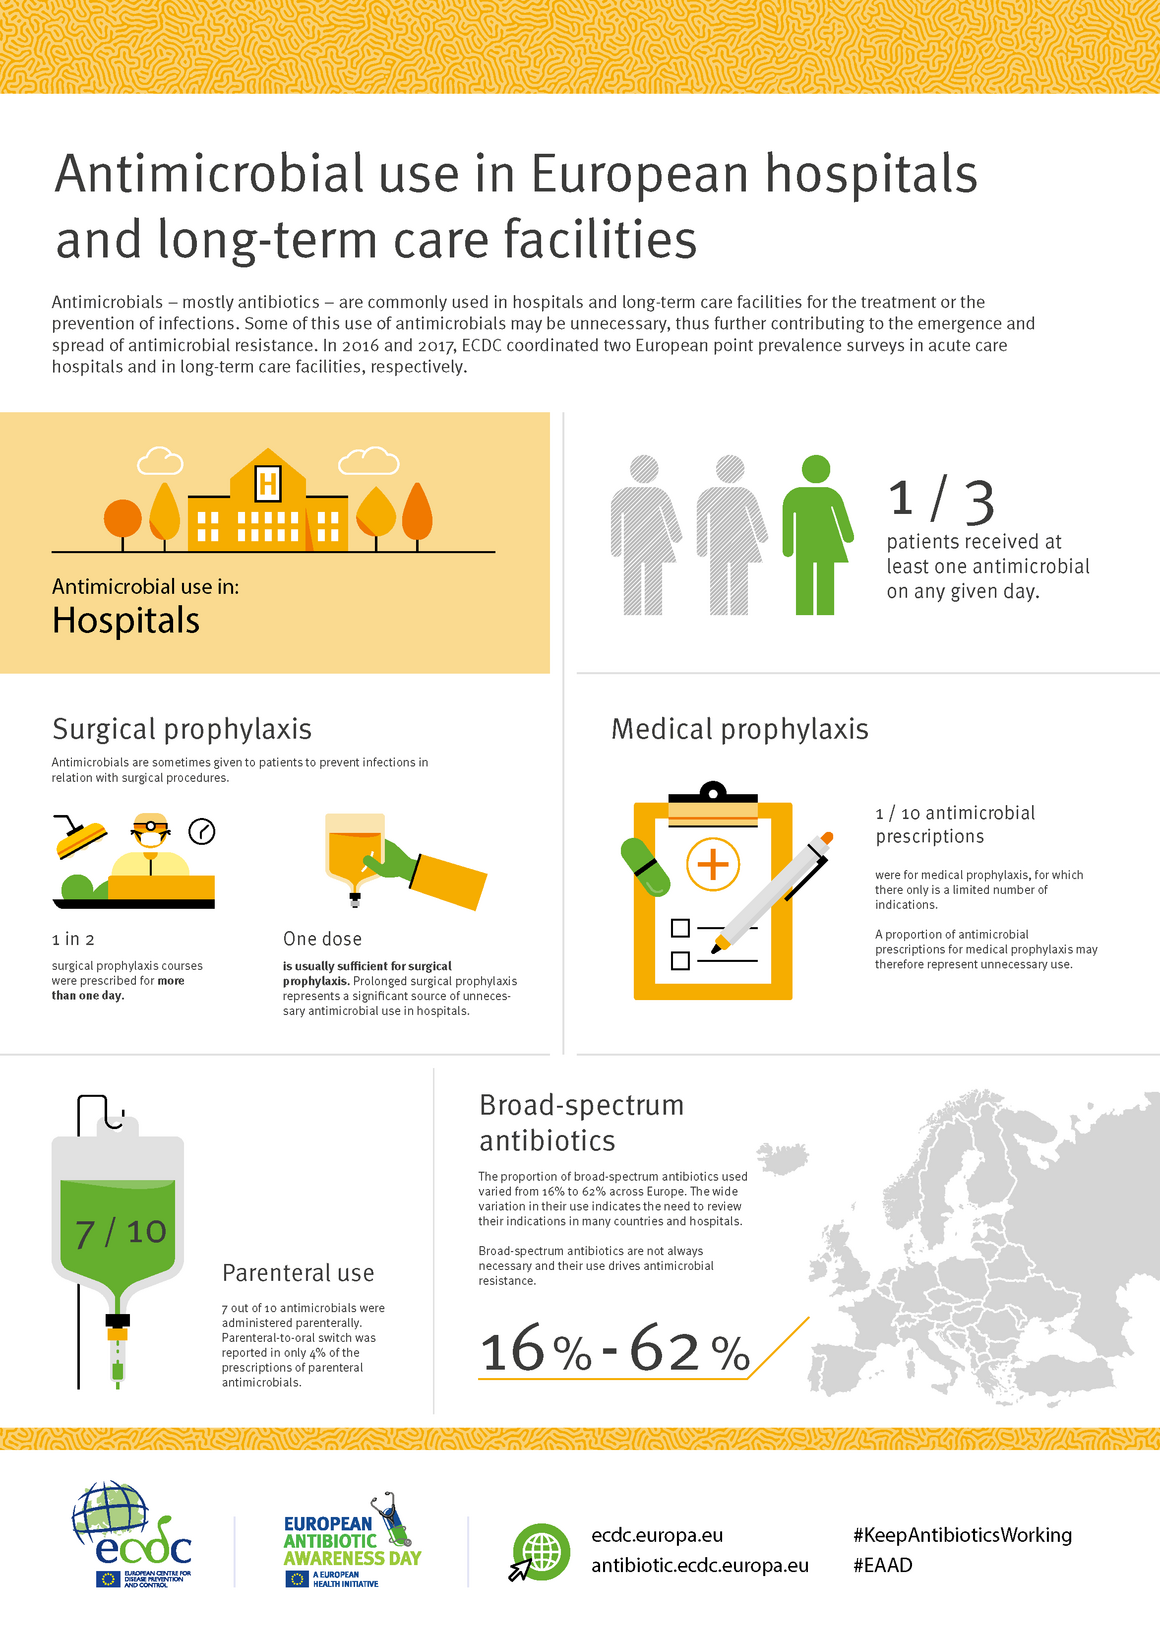 Antimicrobial use in European hospitals and long-term care facilities